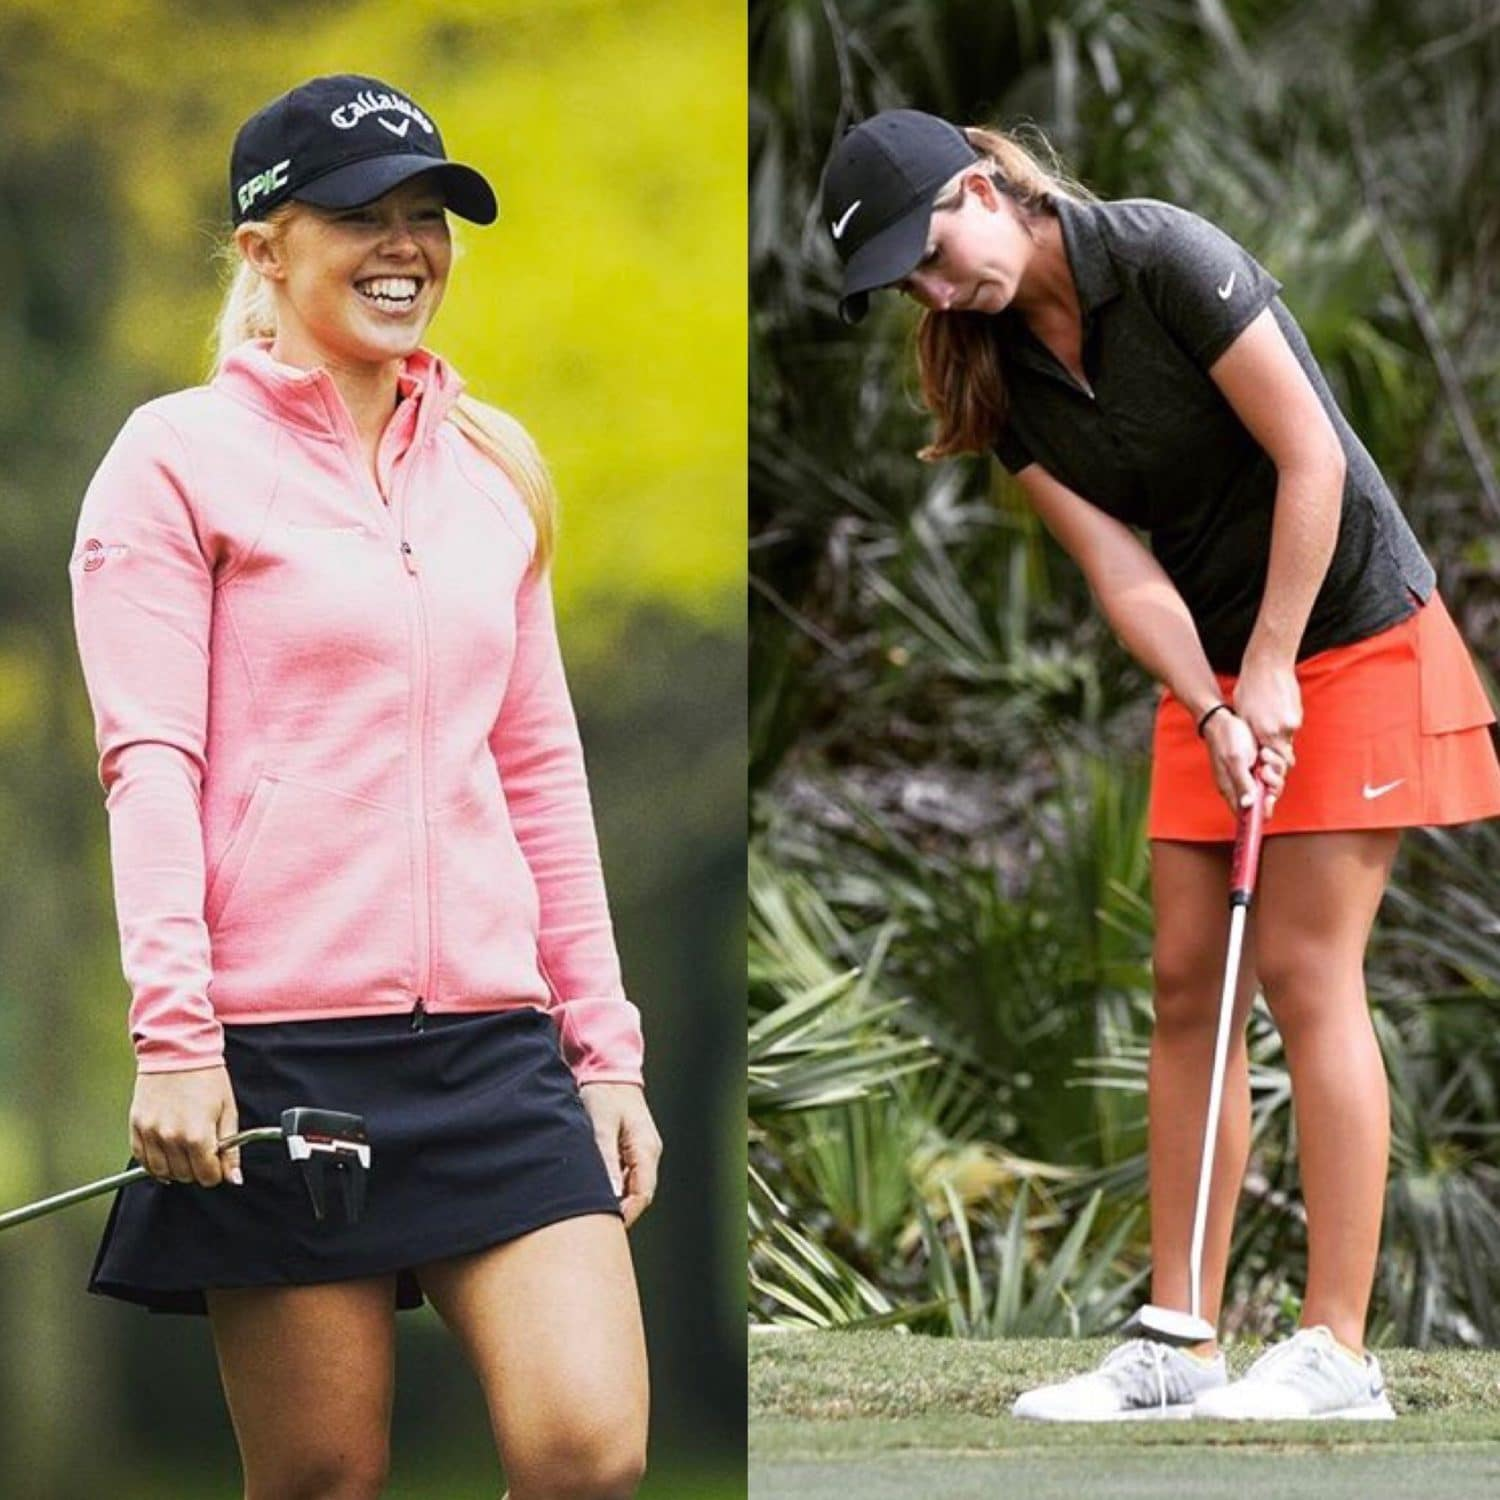 Two IJGA Alumni Take on Stage 3 of LPGA Tour Q-School